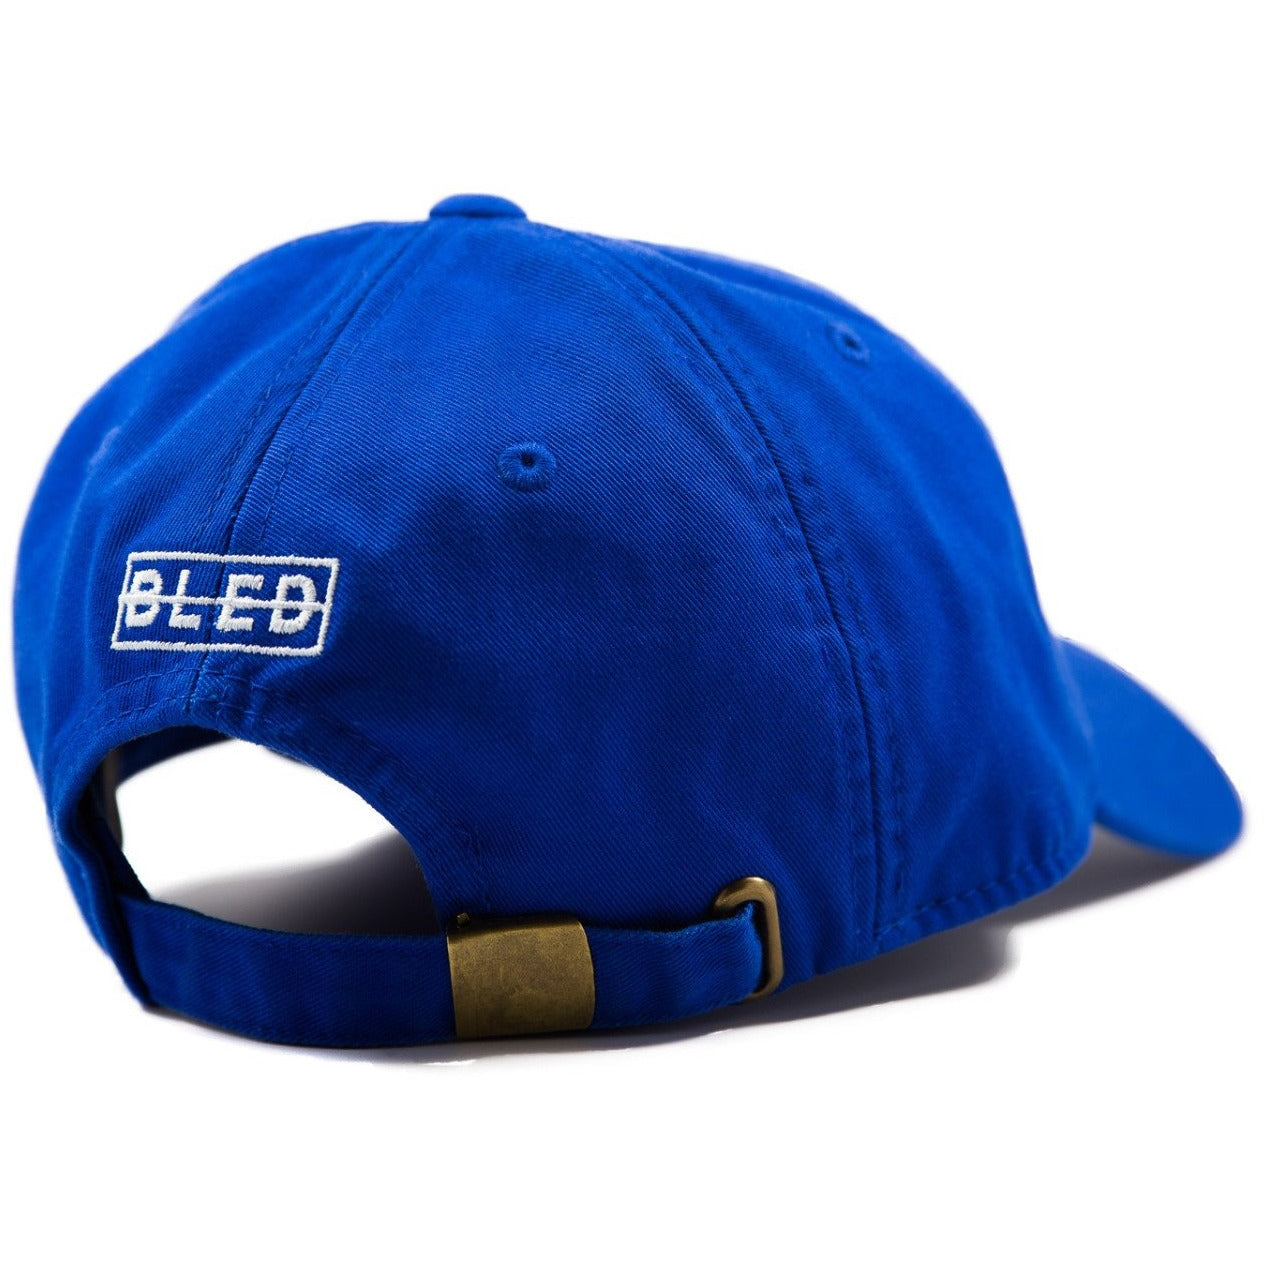 6-panel unconstructed Cotton royal blue dad hat featuring BLED letter logo felt patch on the front and BLED logo embroidered on the back with adjustable strap closure. skate, skateboarding, hype, streetwear